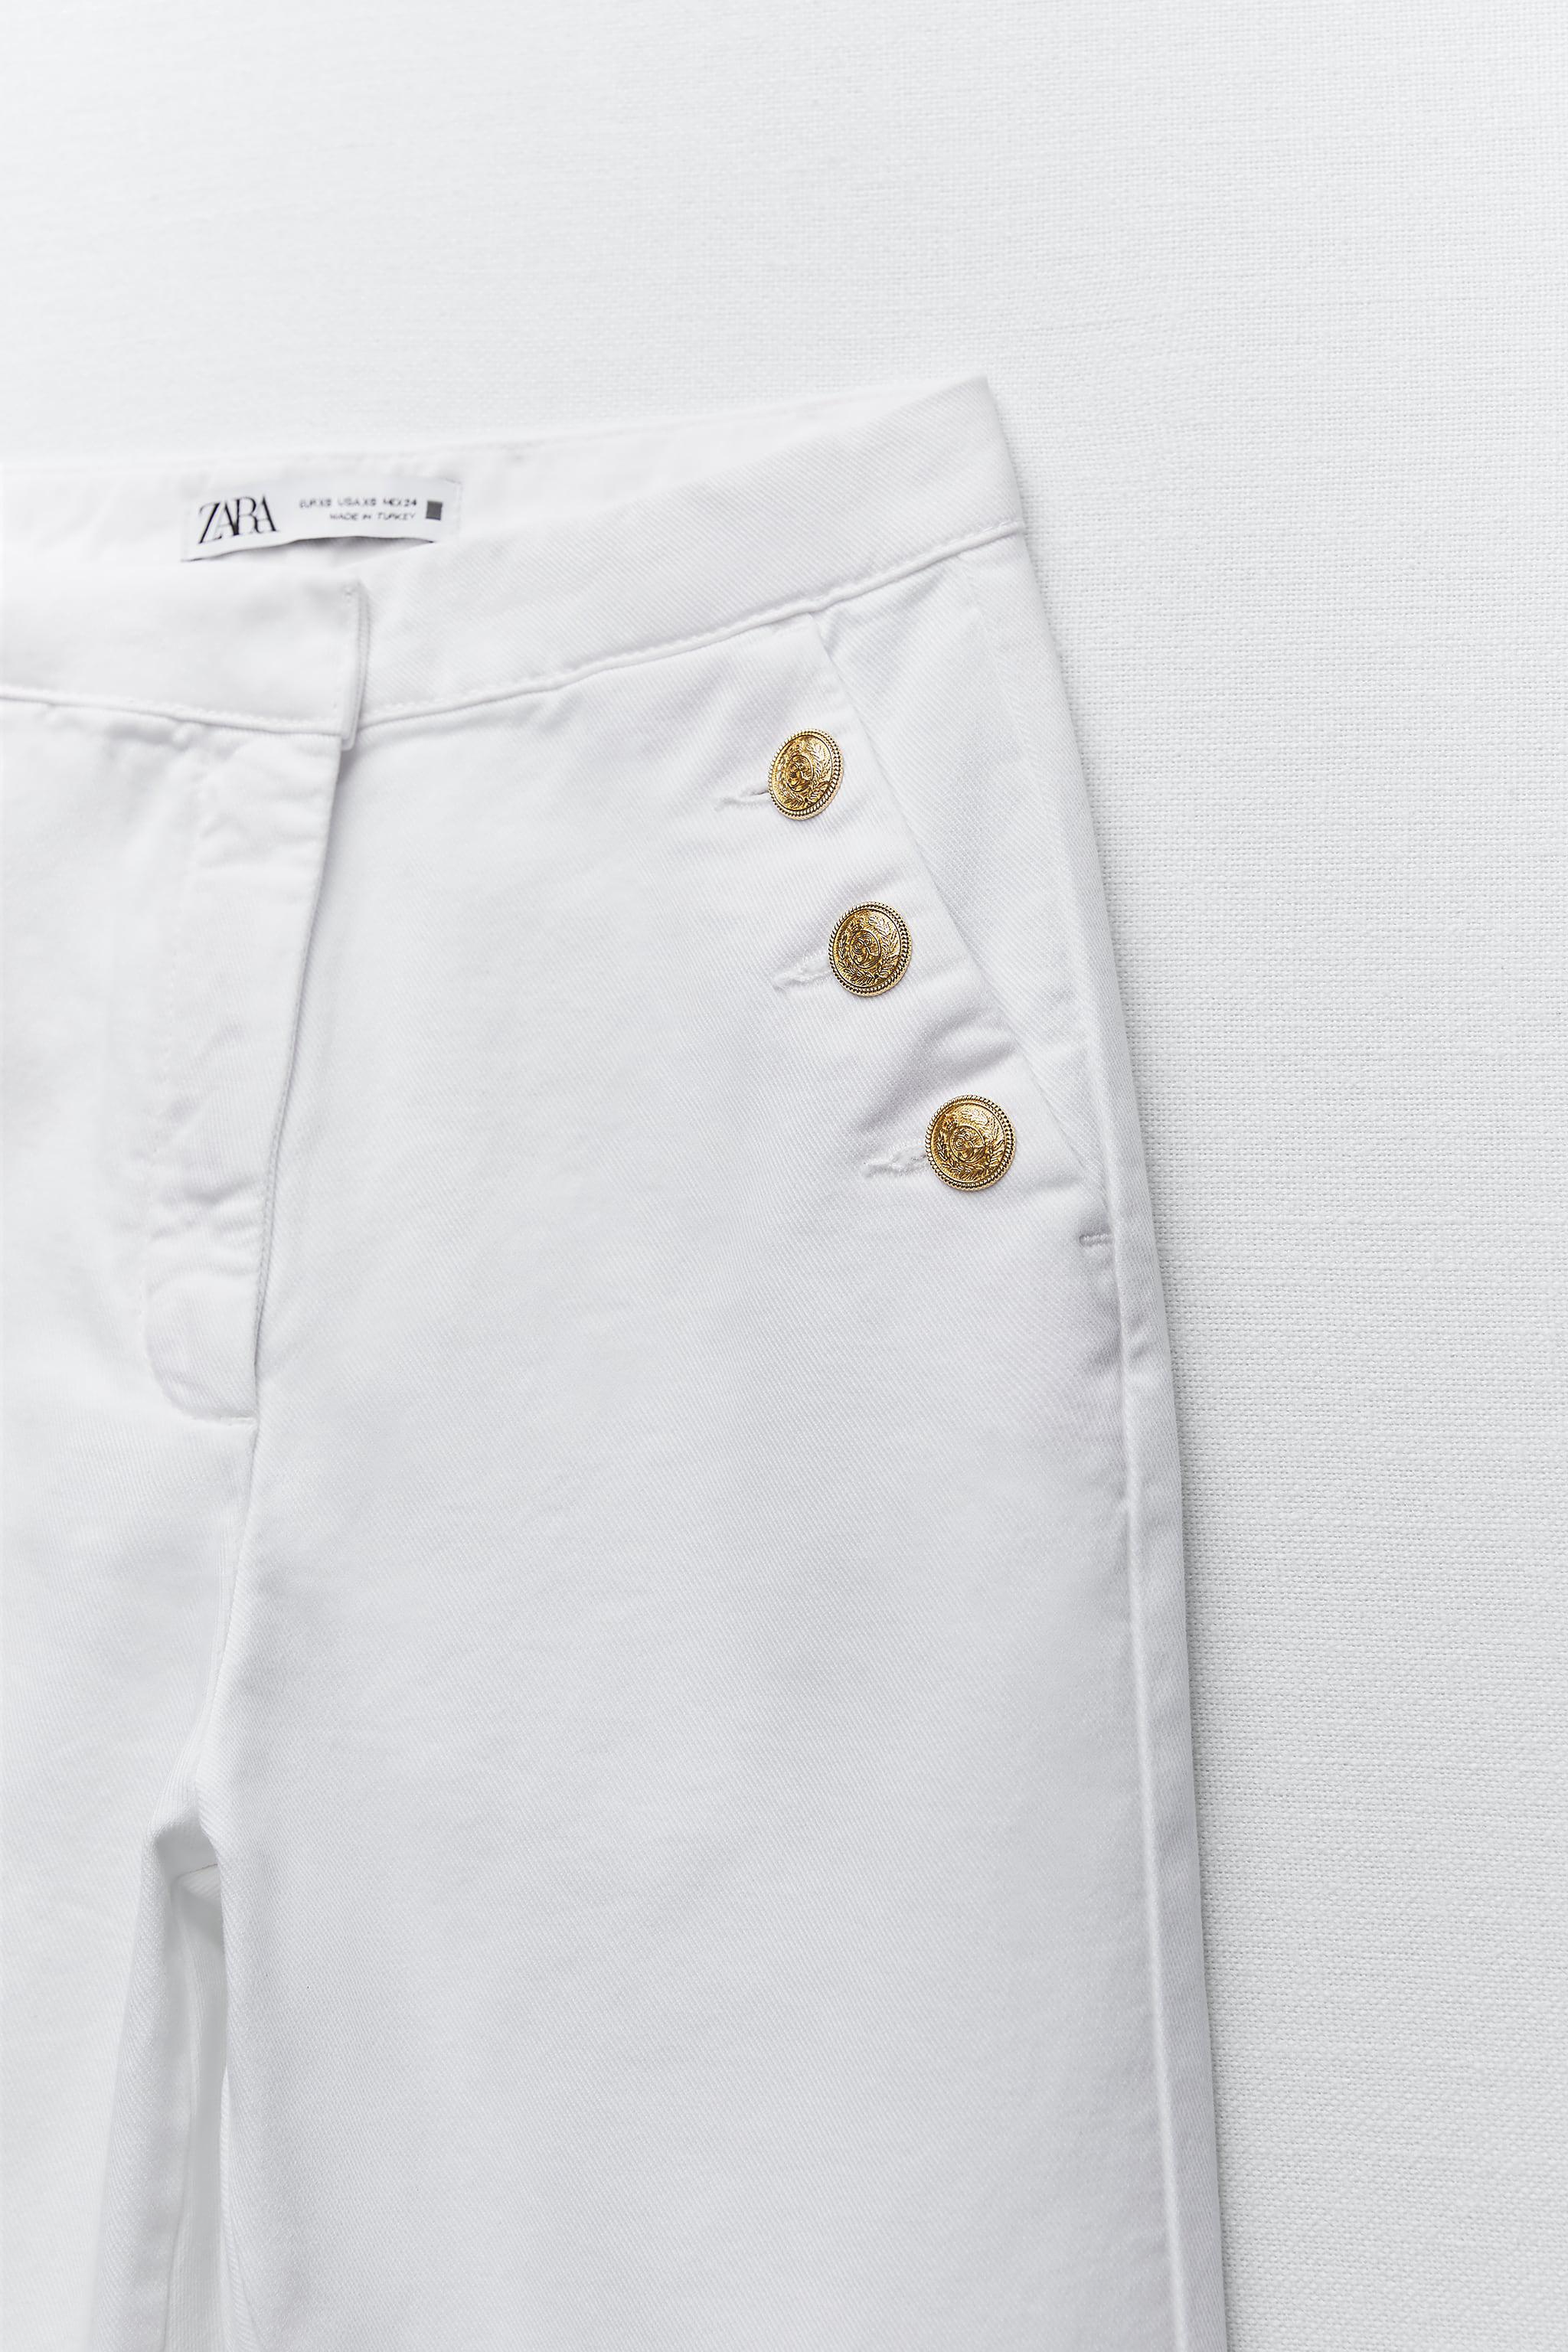 GOLD BUTTONED STRAIGHT LEG PANTS 2